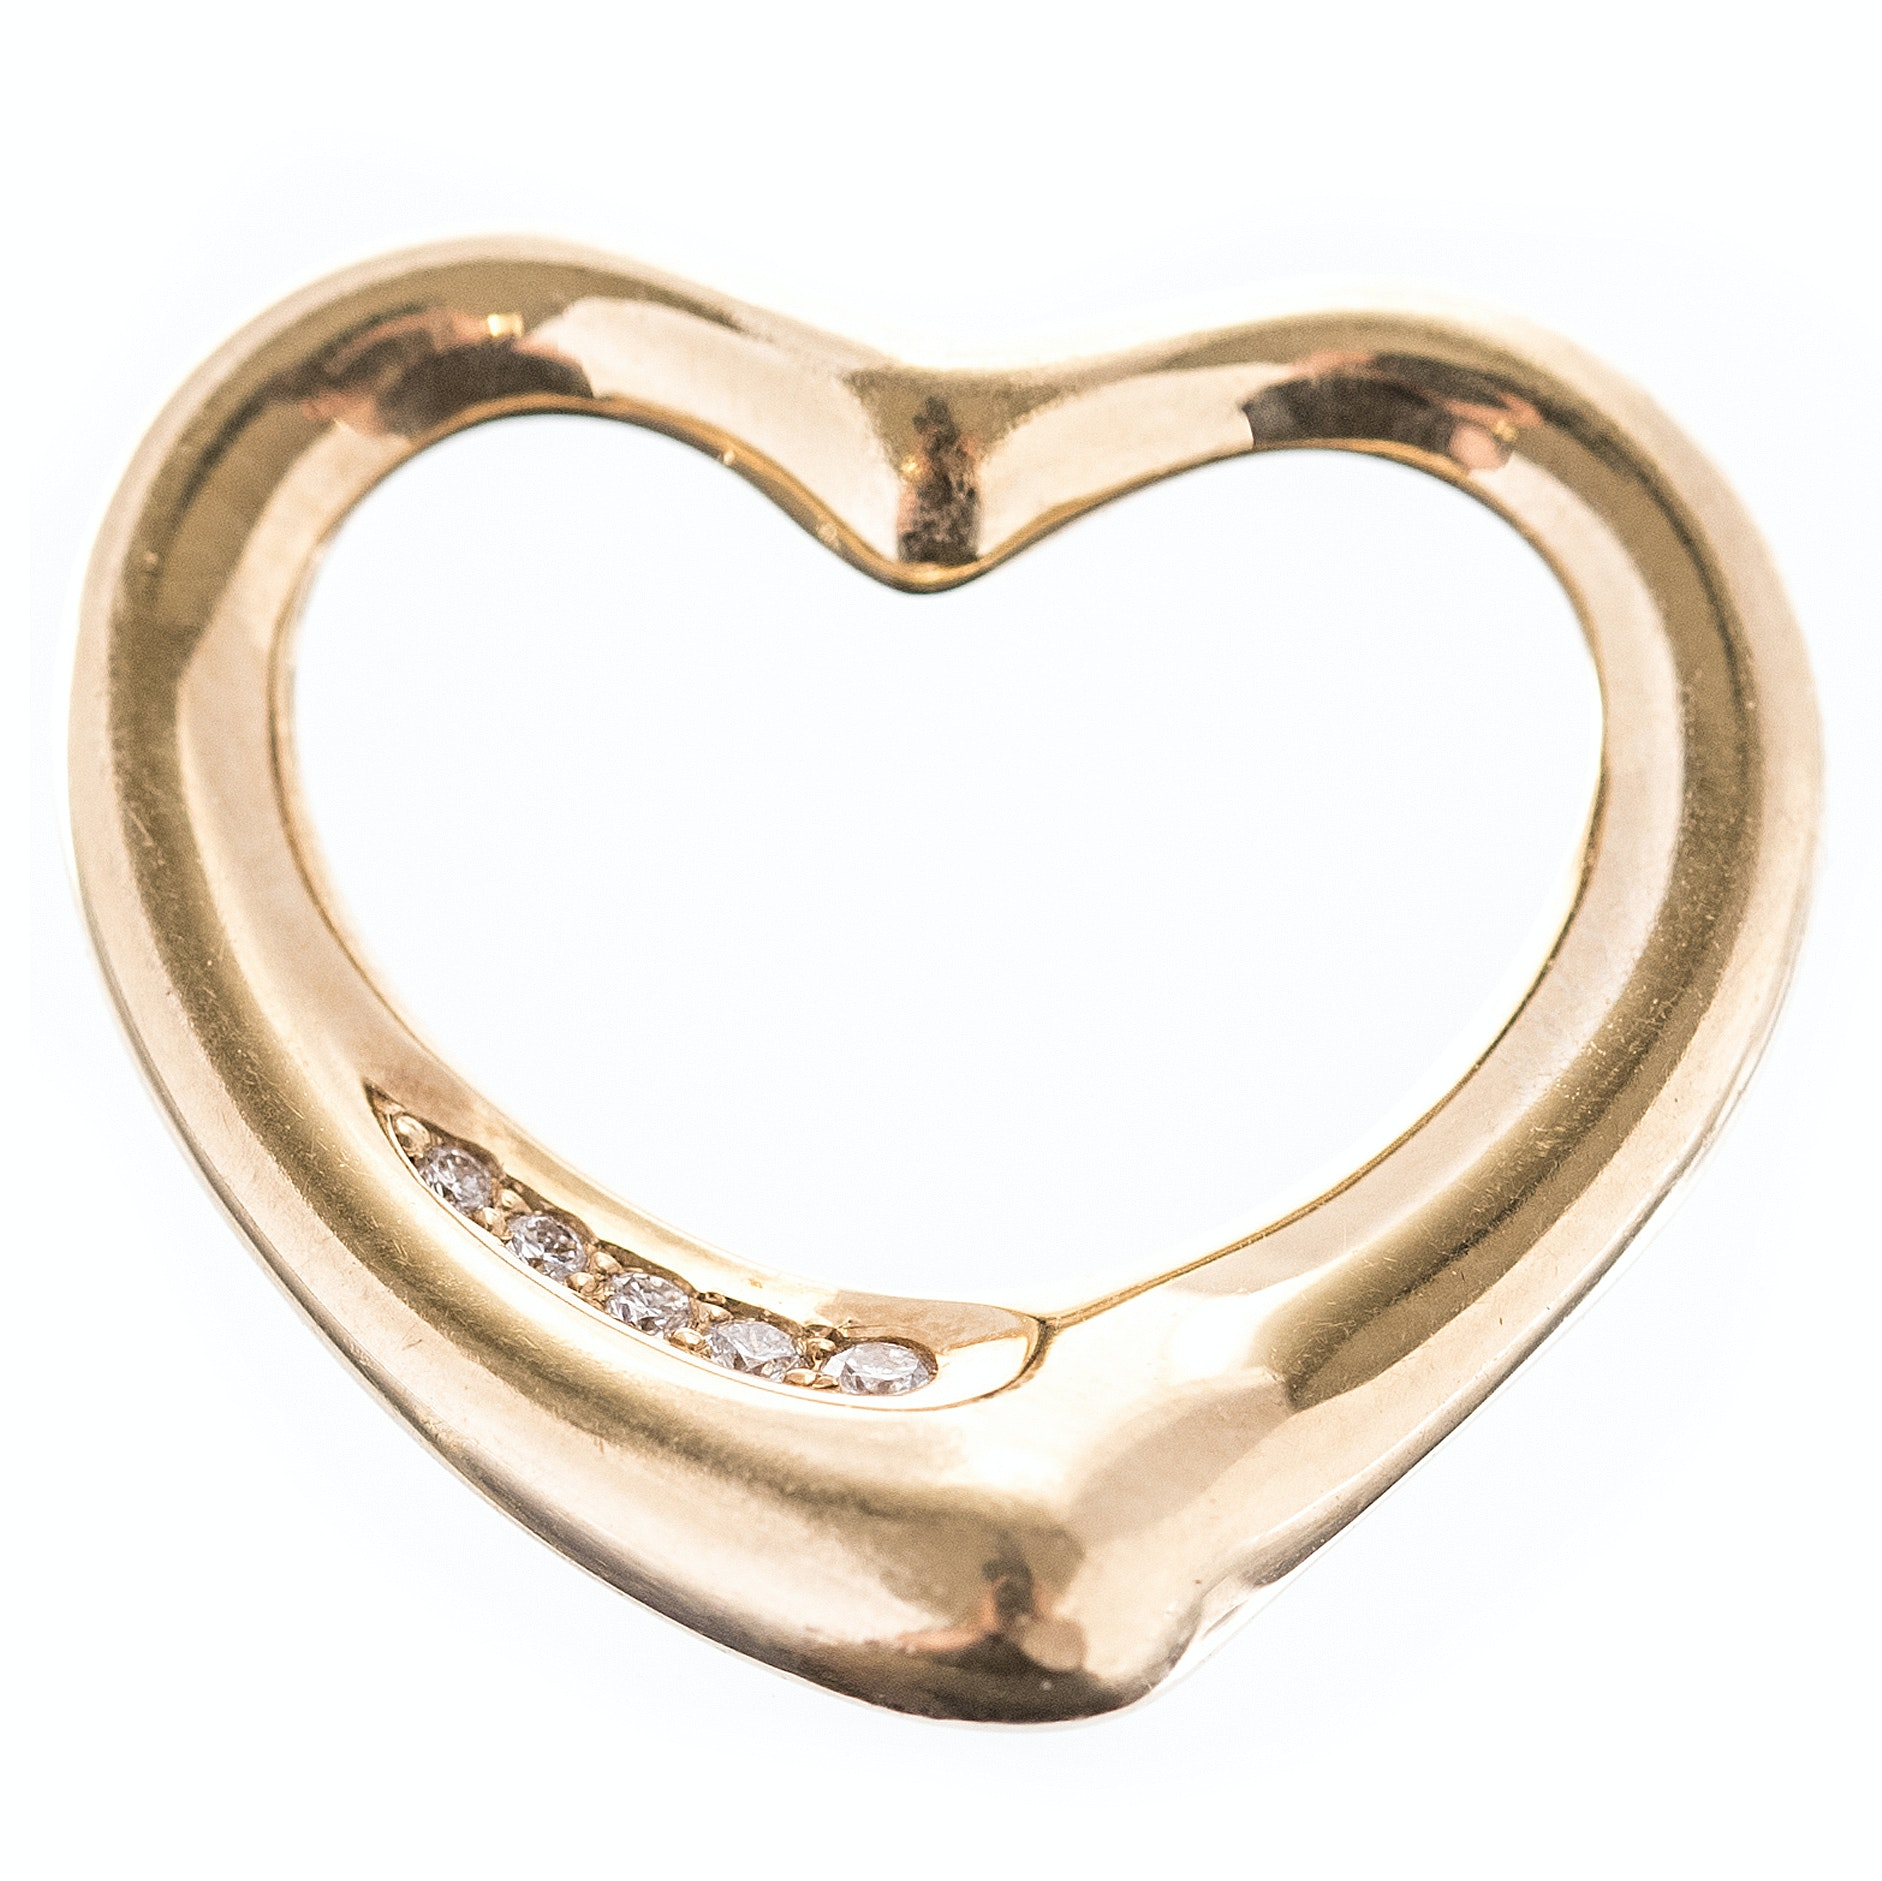 Elsa Peretti for Tiffany & Co. 18K Yellow Gold Diamond Heart Pendant